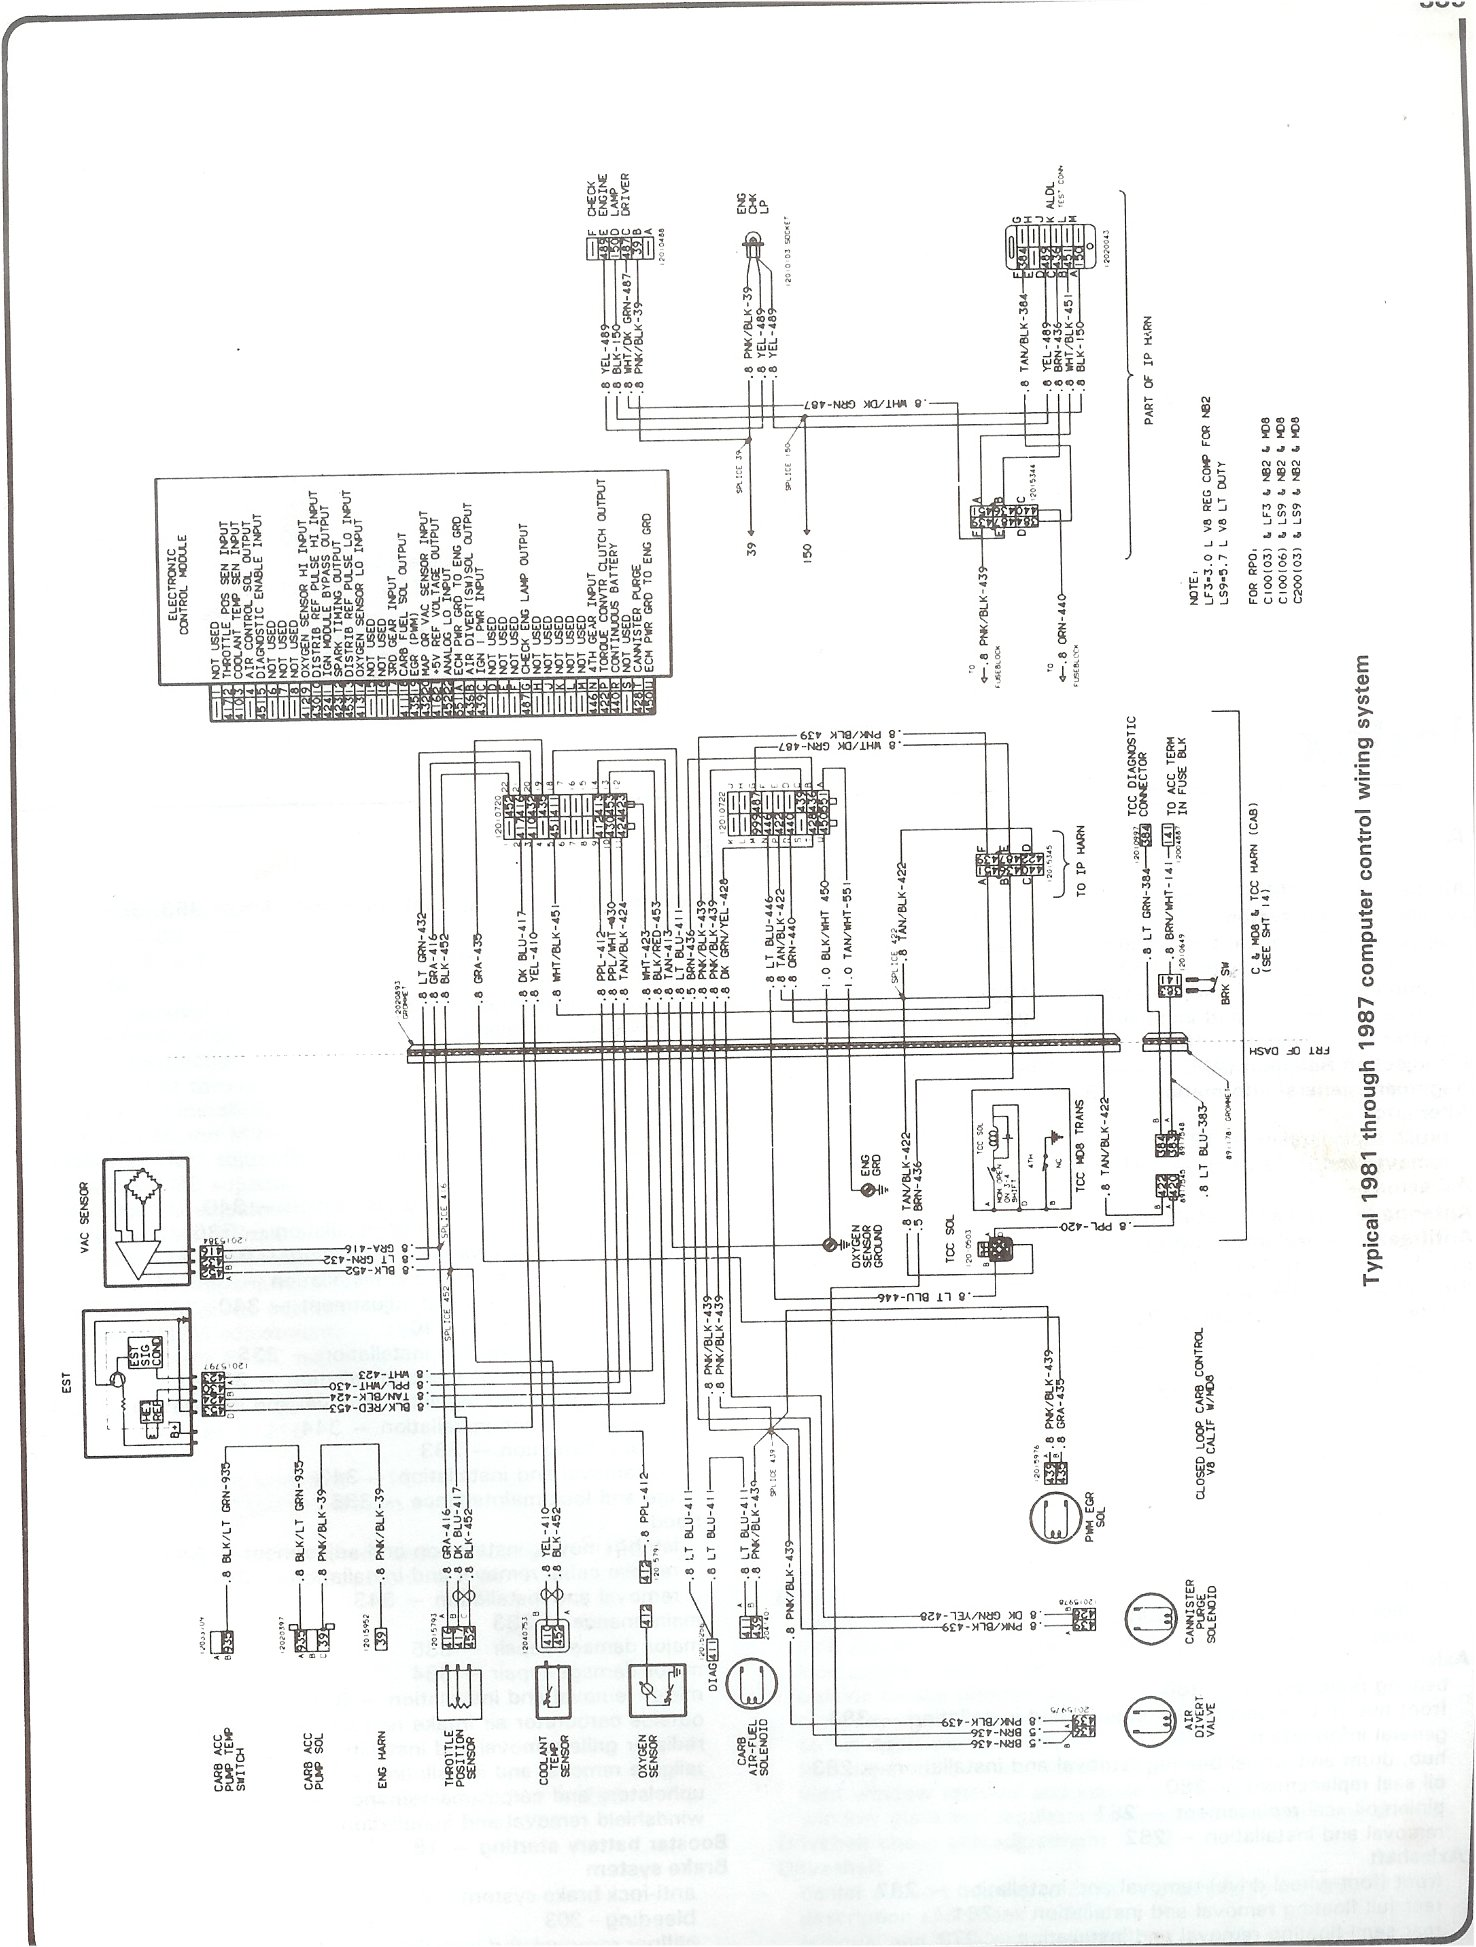 1987 chevy c30 wiring diagram example electrical wiring diagram u2022 rh cranejapan co